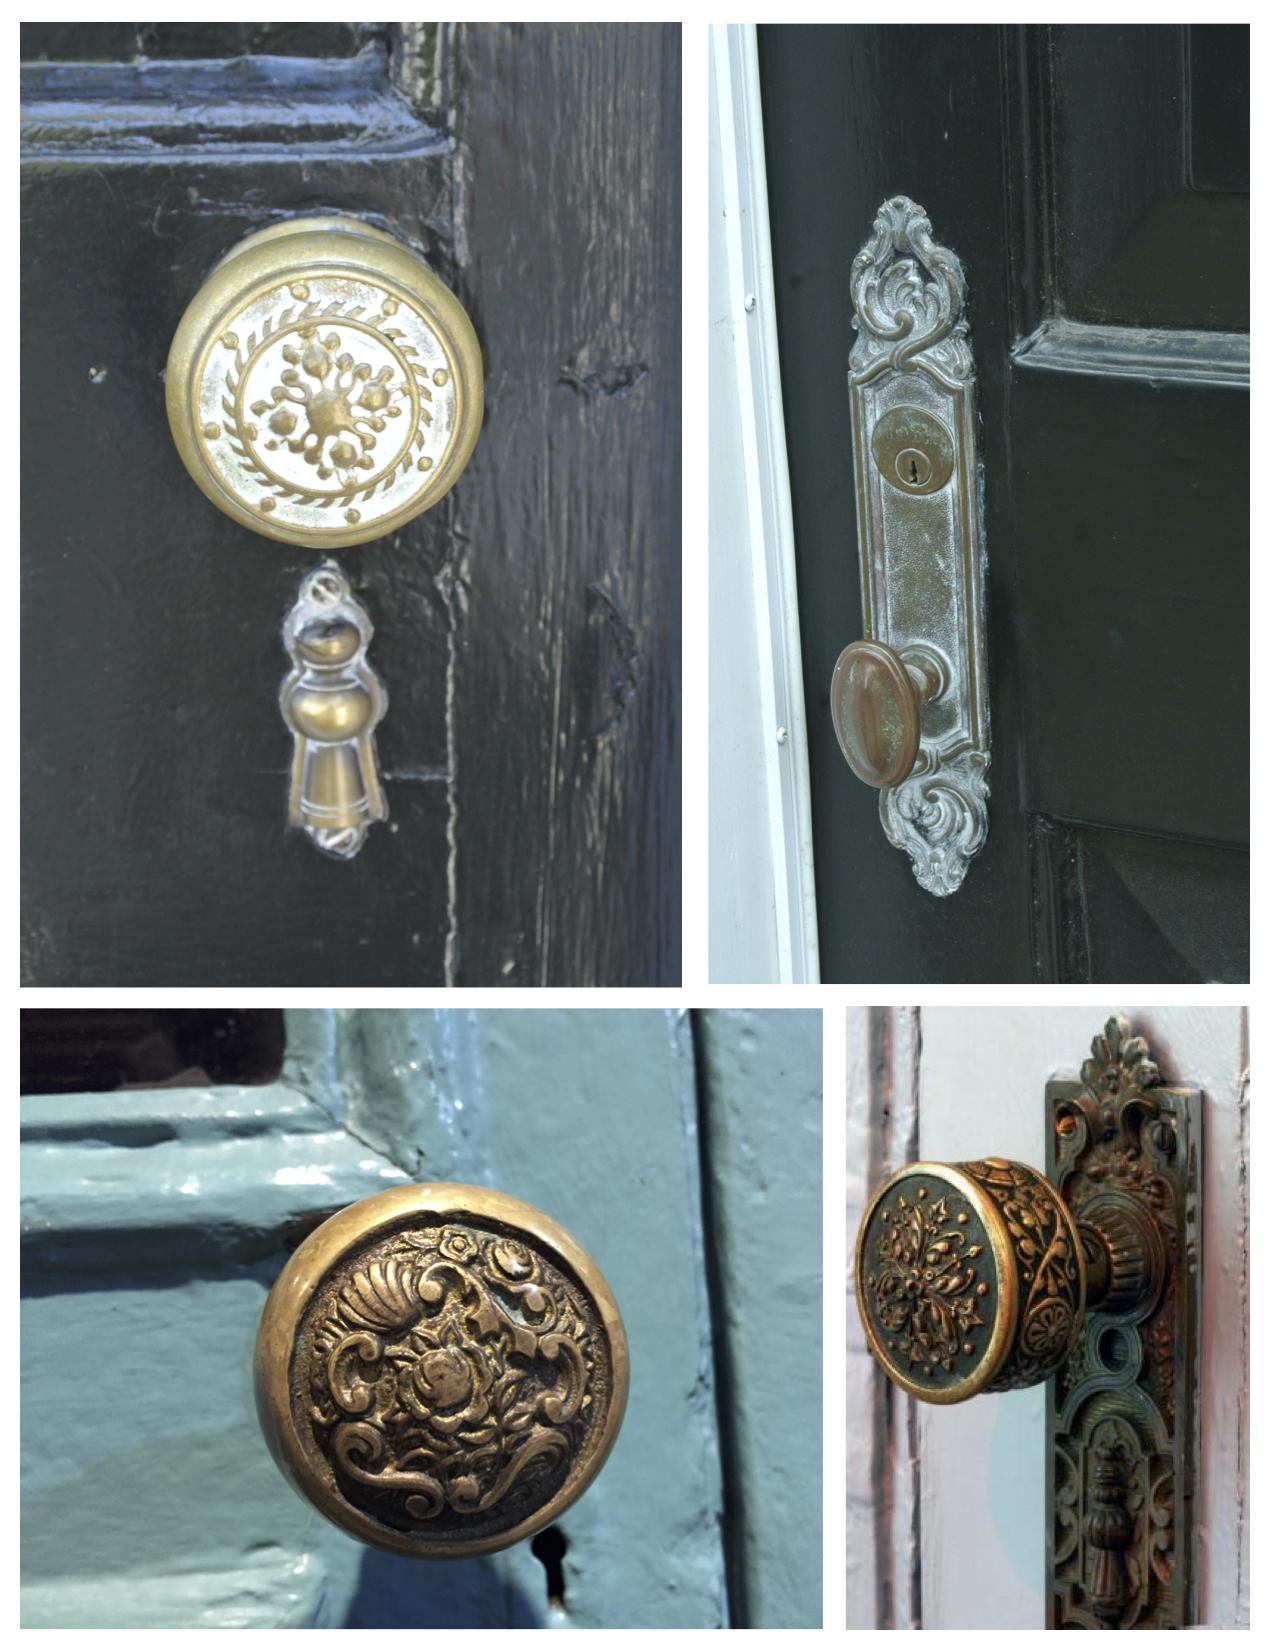 glass antique coat doors the diy boardi door board with new old knobs barn into screwed hanger rack